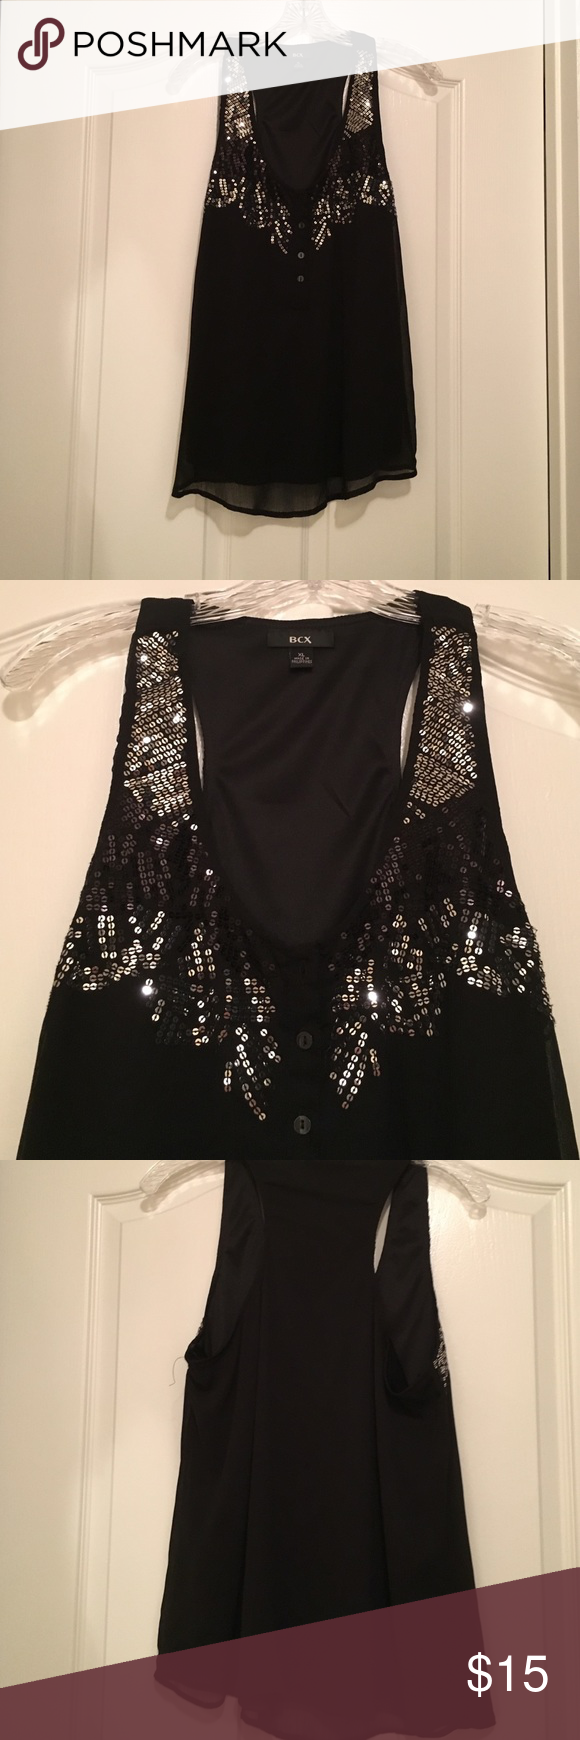 Racer back BCX Black racer back BCX. Black and sliver sequins. Perfect for a night out! $15 OBO BCX Tops Tank Tops